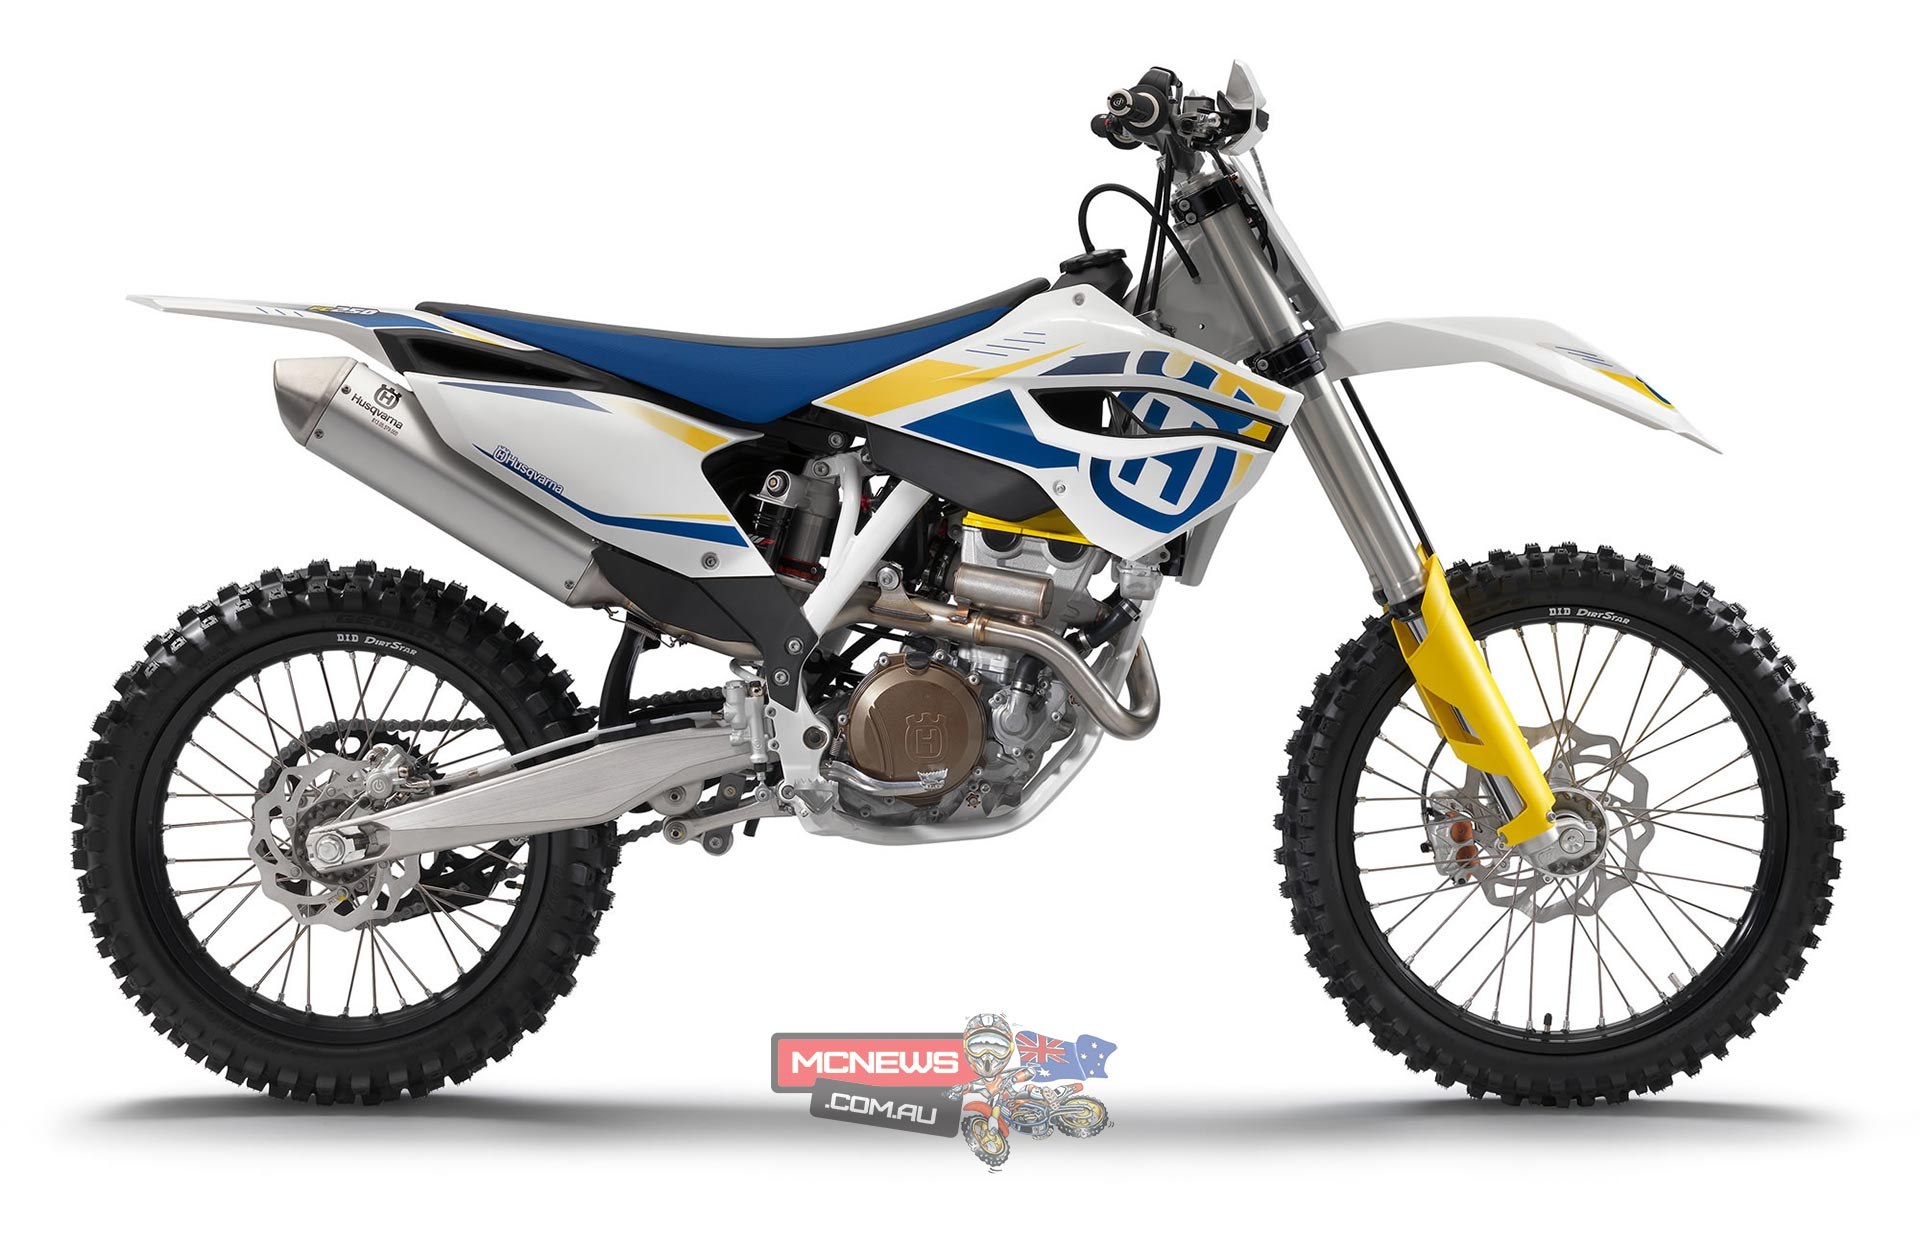 The global re-launch of Husqvarna motorcycles sees the brand revert to some famous and familiar livery. Here is the 2014 Husqvarna FC250